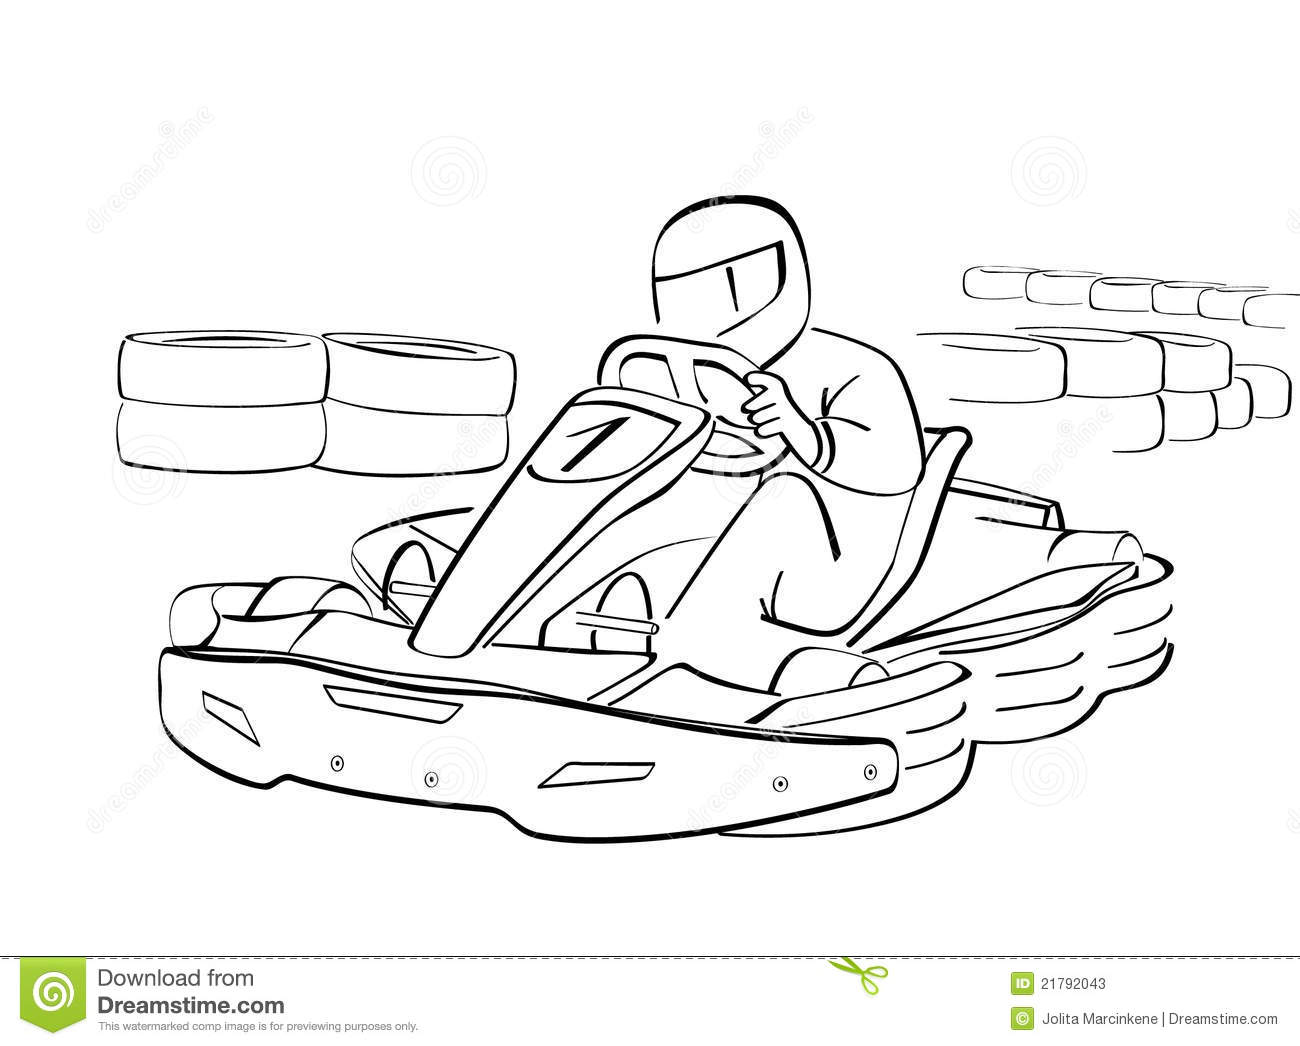 Go kart stock vector. Image of vehicle, background ...